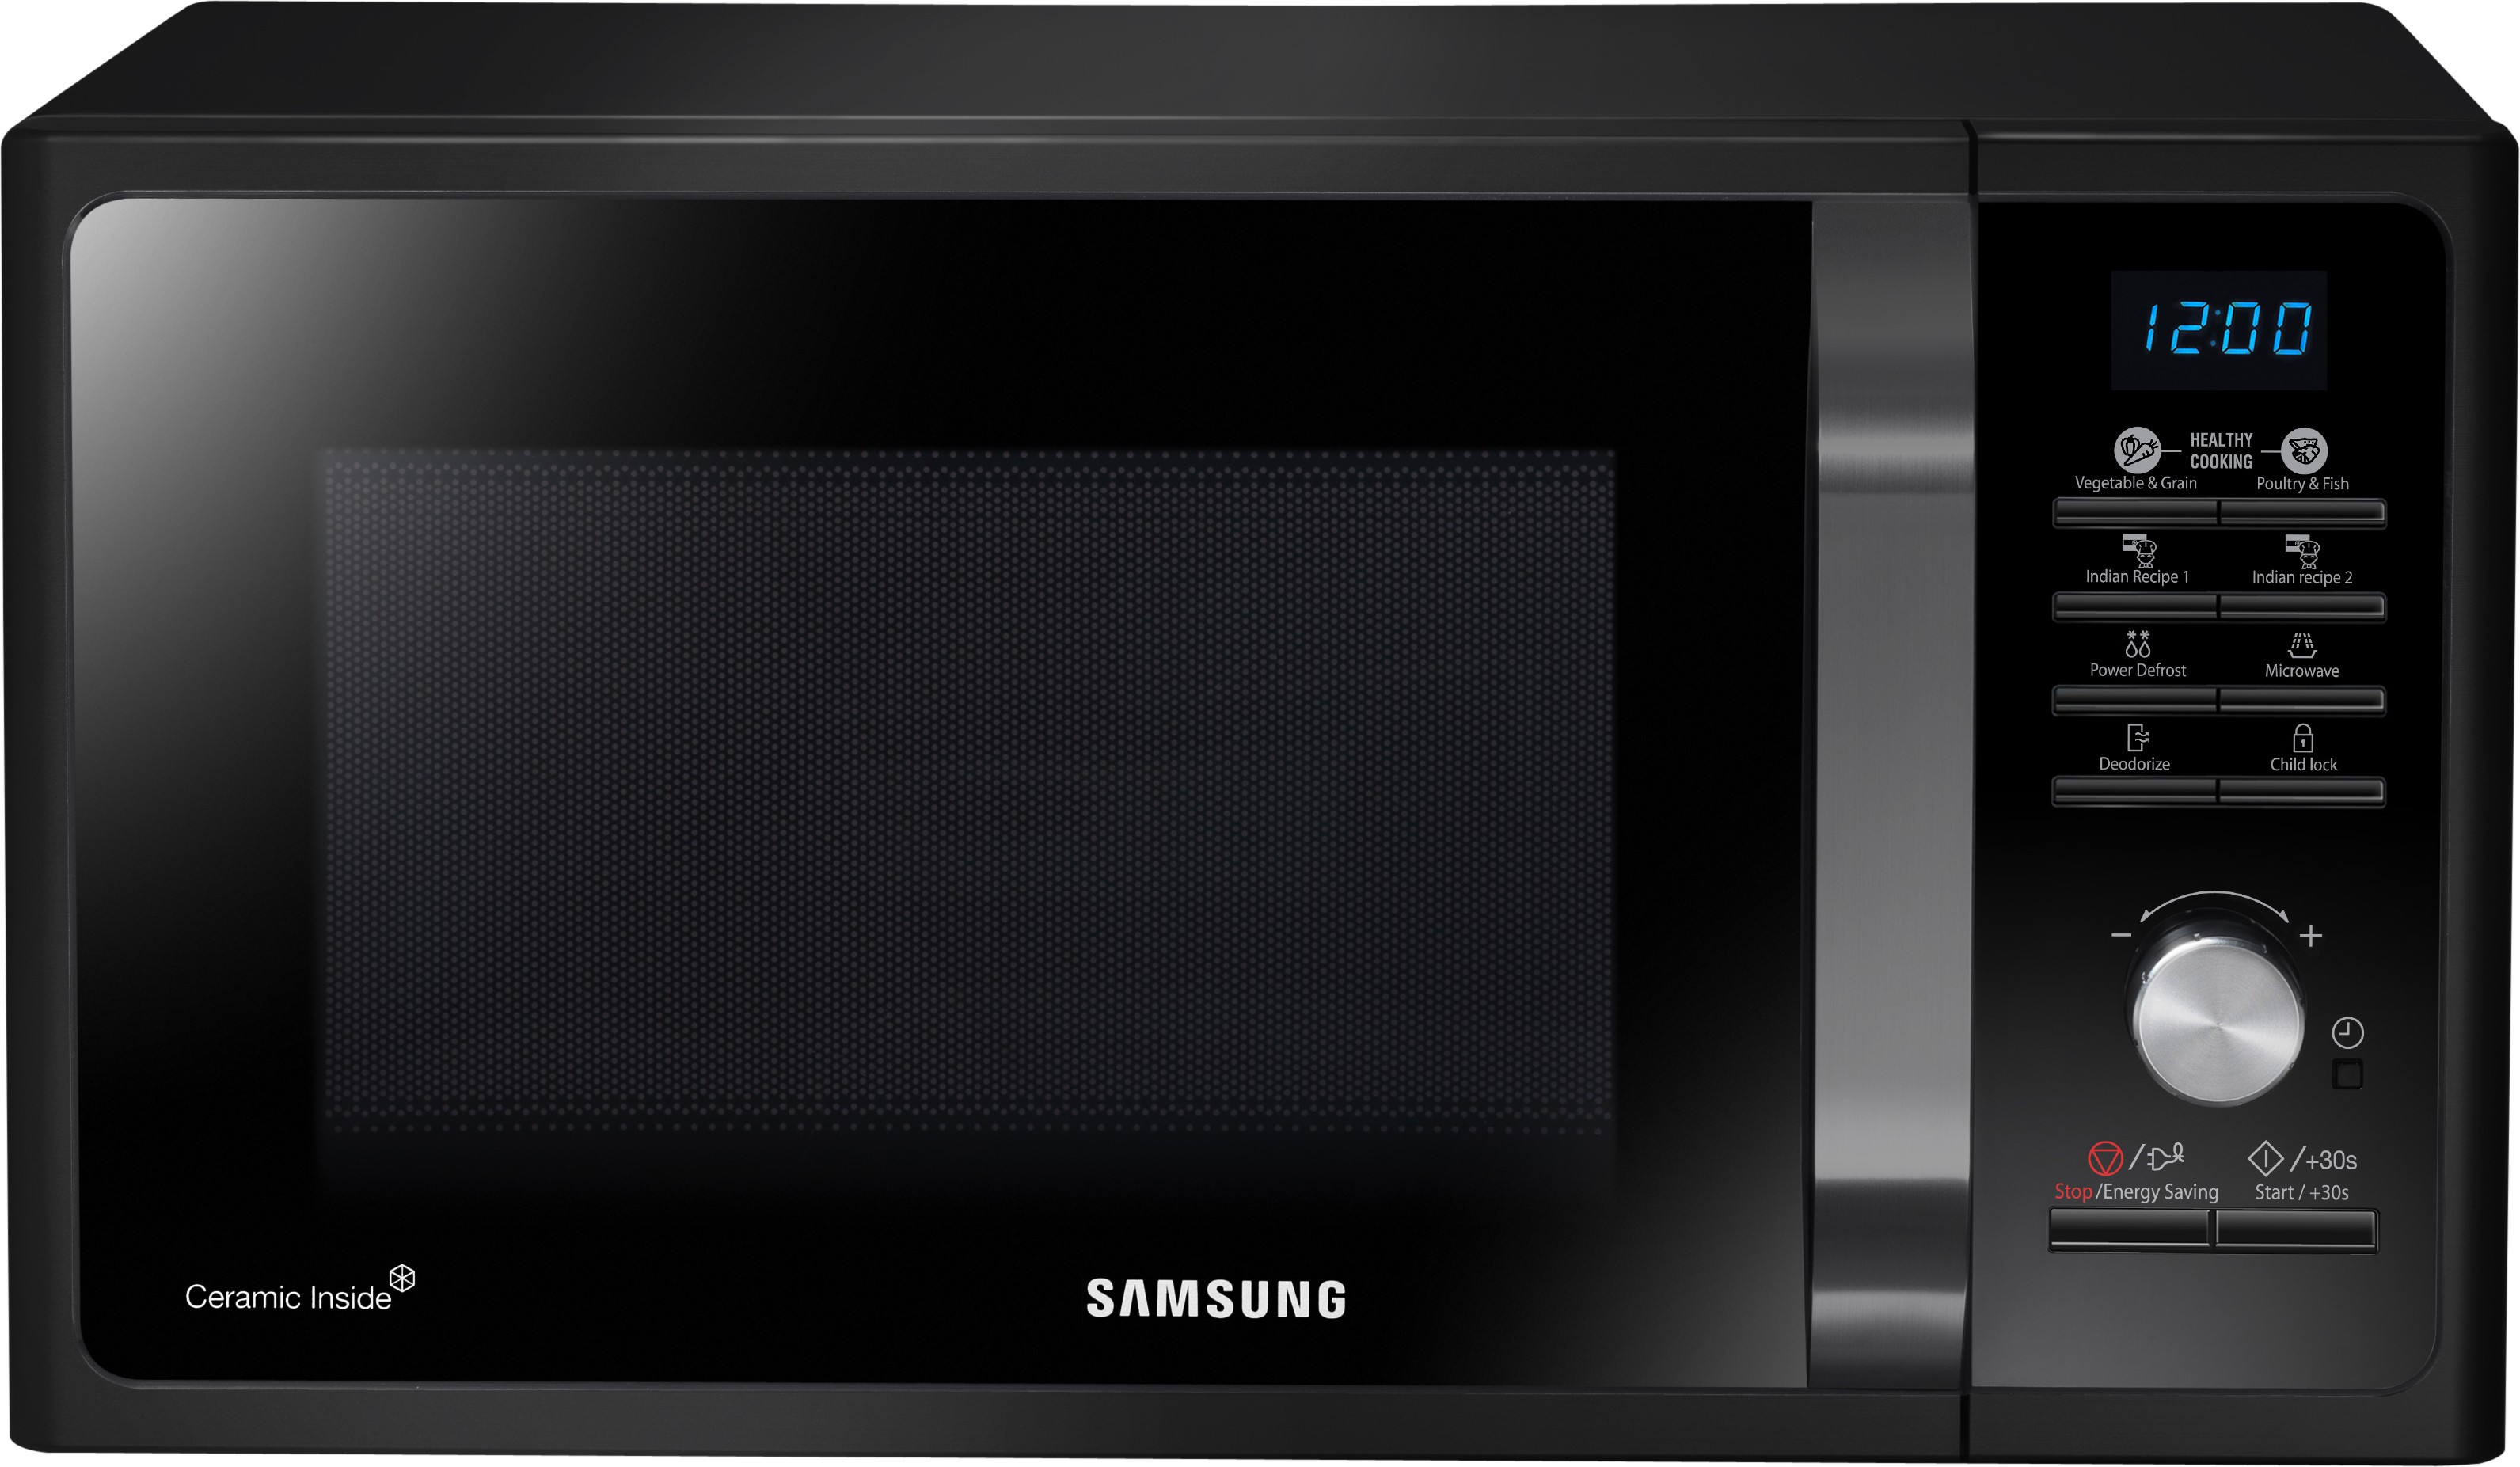 Deals - Chennai - Under ₹10,000 <br> Samsung, LG & more<br> Category - home_kitchen<br> Business - Flipkart.com